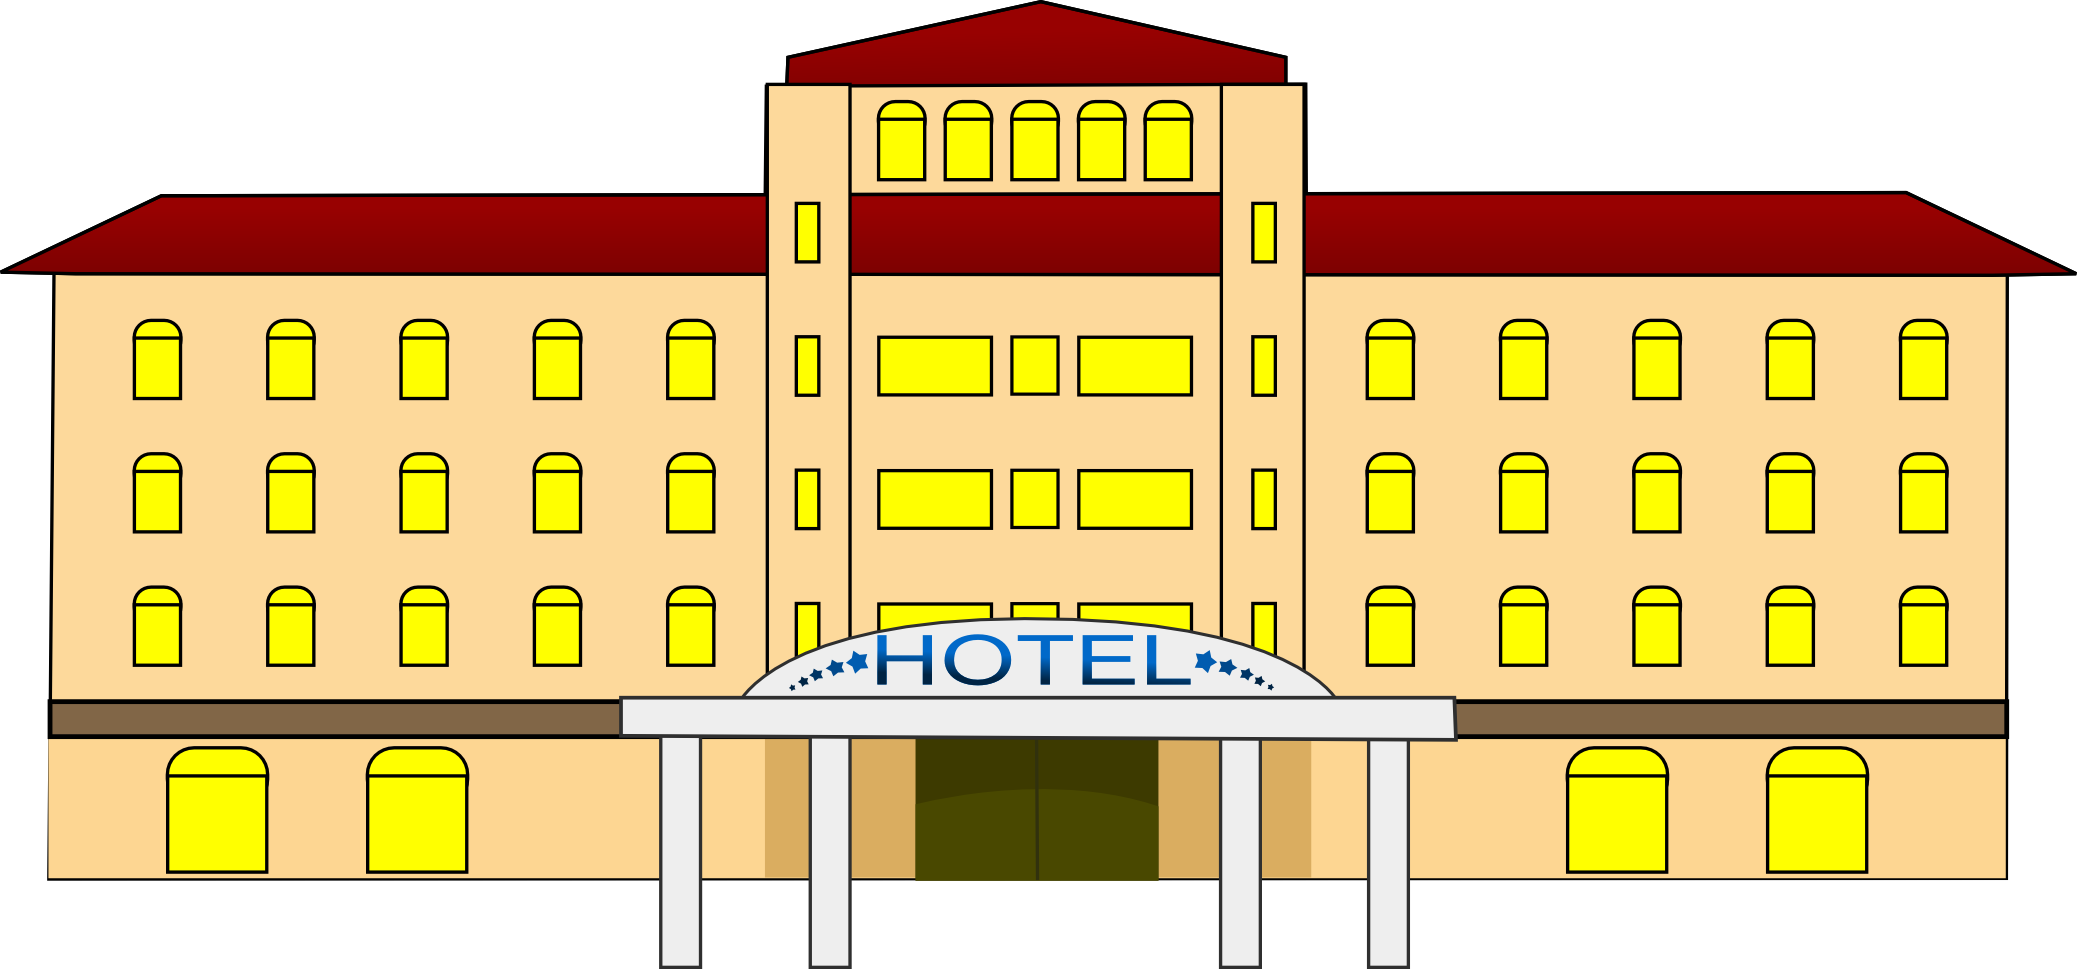 Hotel clipart. Building